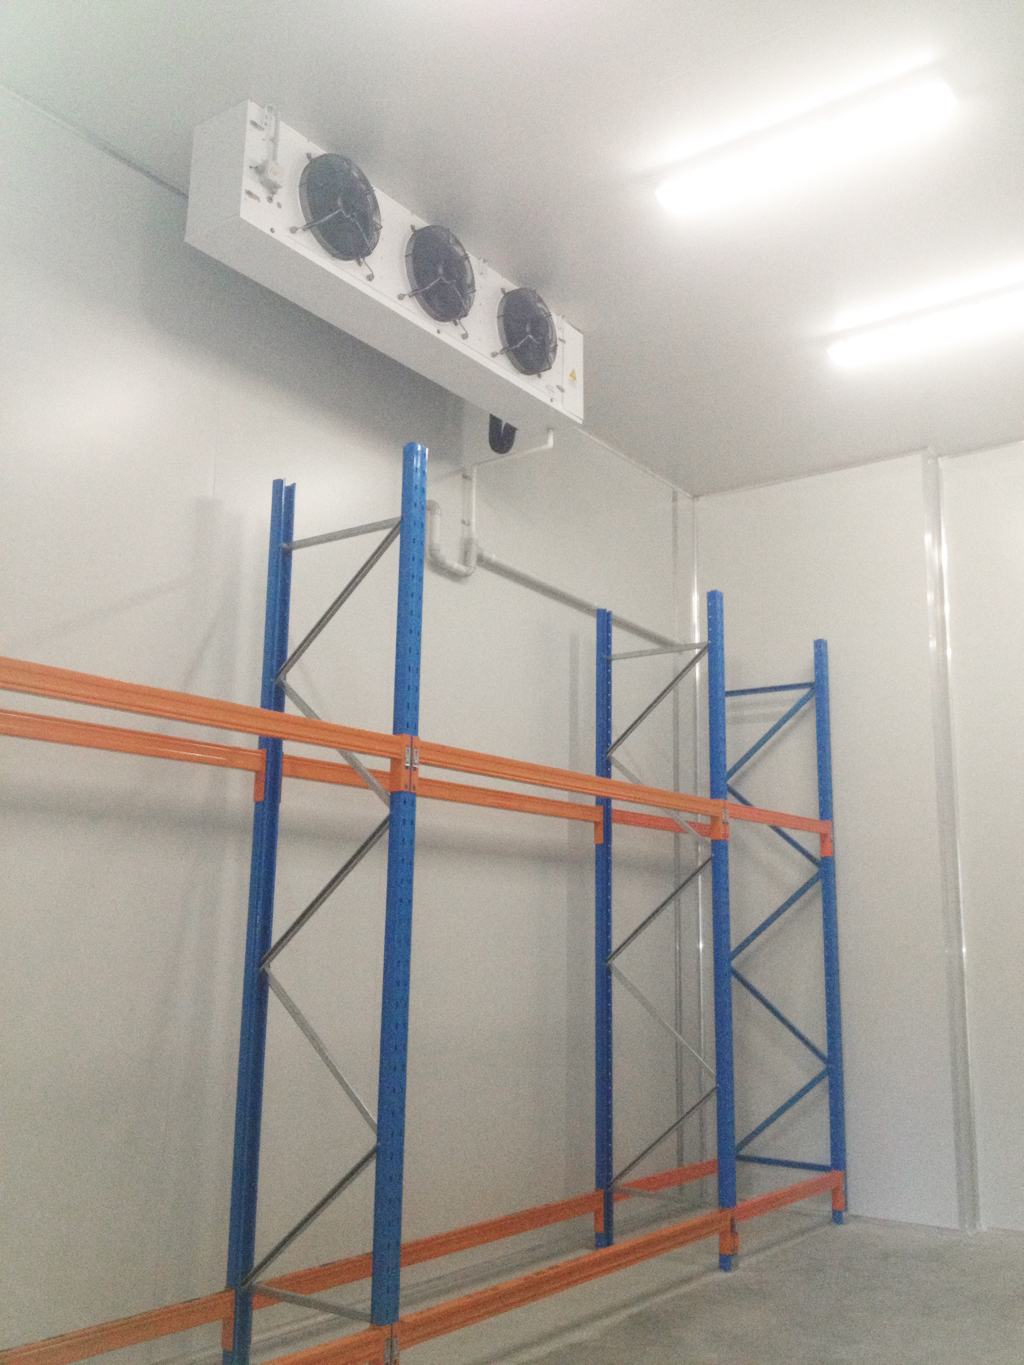 Canning_Vale_Cold_Storage_Coolroom_Evaporator.jpg